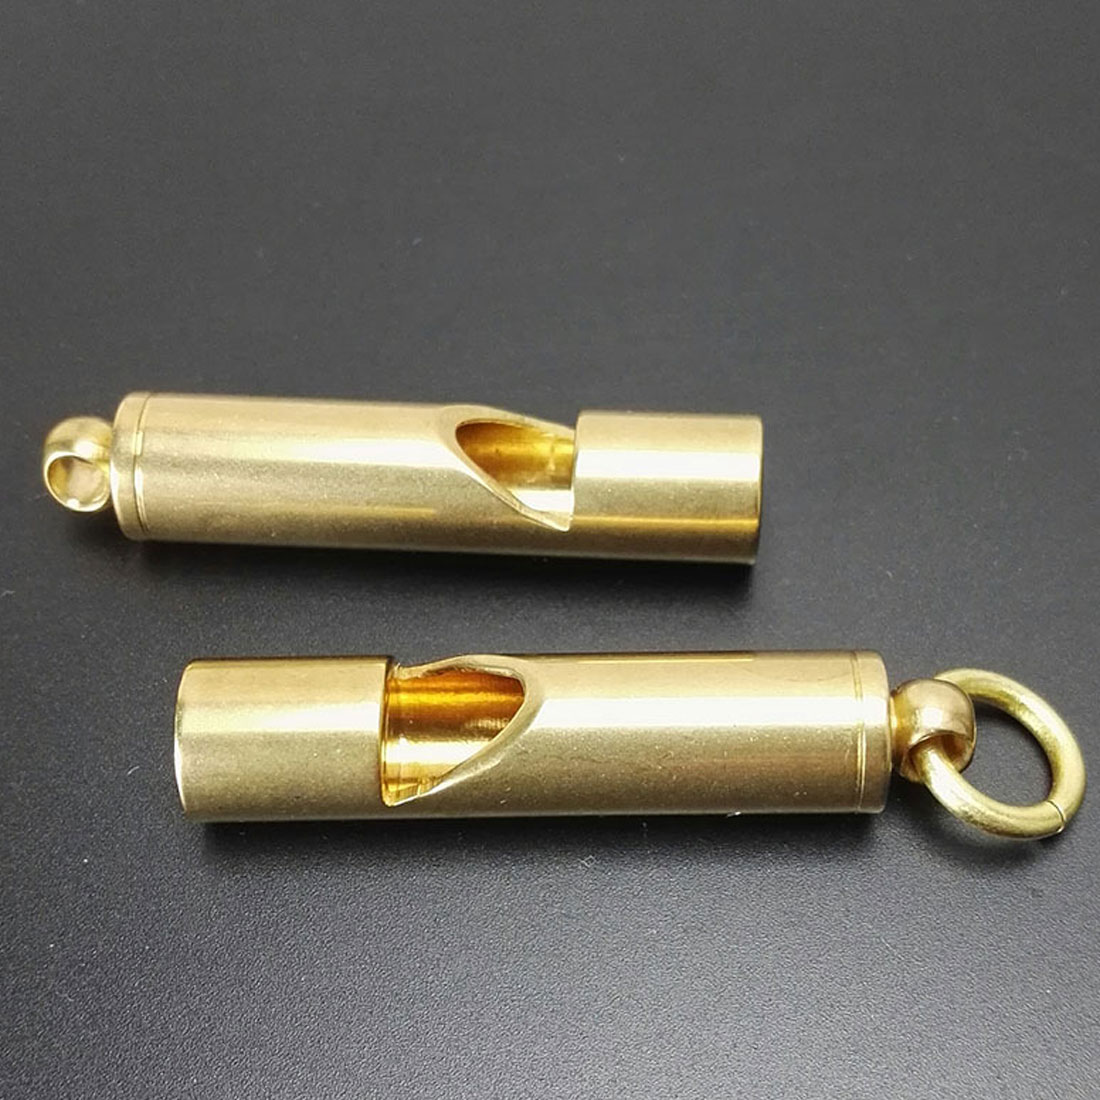 Practical Solid Brass Whistle Keychain Edc Emergency Safety Keychain For Camping Hiking Outdoor Sport Tools